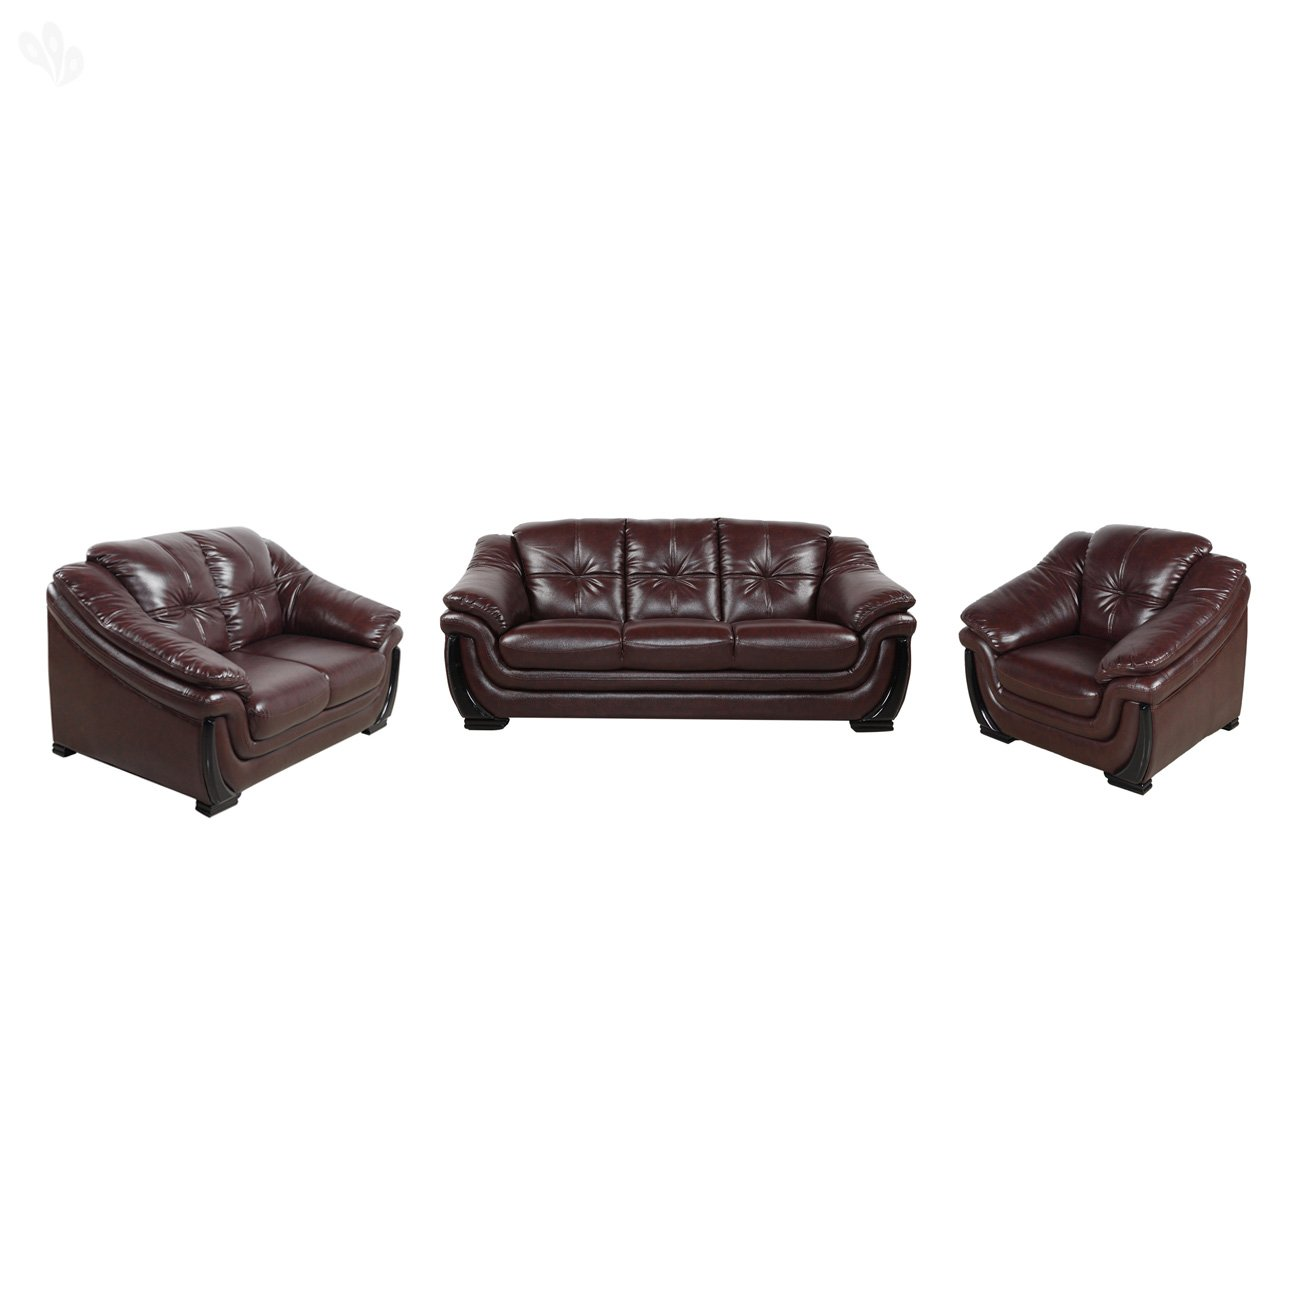 Enjoyable Royal Oak Roylxm712 Six Seater Sectional Sofa Set 3 2 1 Gmtry Best Dining Table And Chair Ideas Images Gmtryco